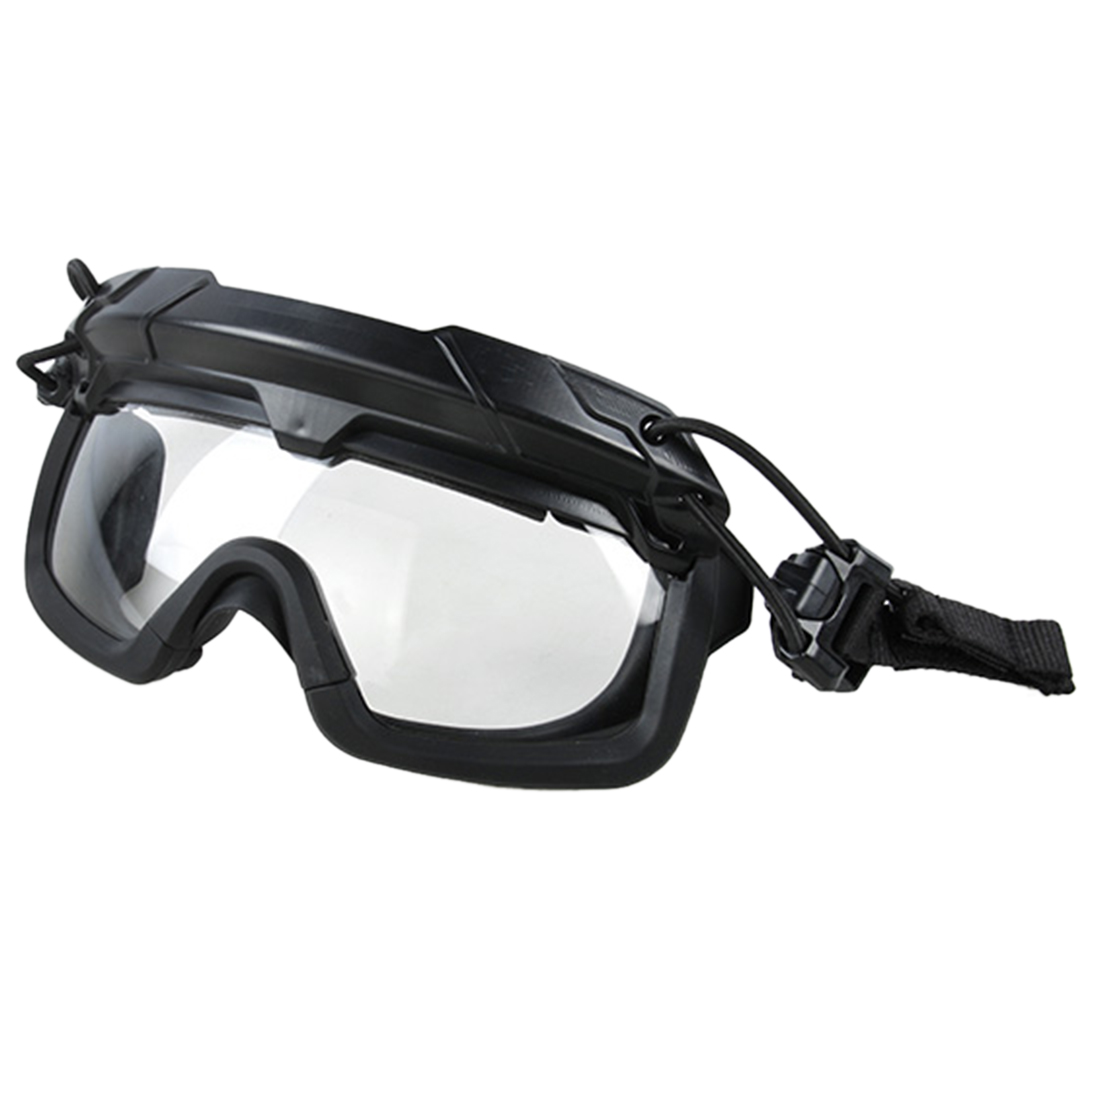 New Hot ANSI Z87 1 Anti Explosion Tactical Helmet Safety Goggles Waterproof Eyes Protector With High